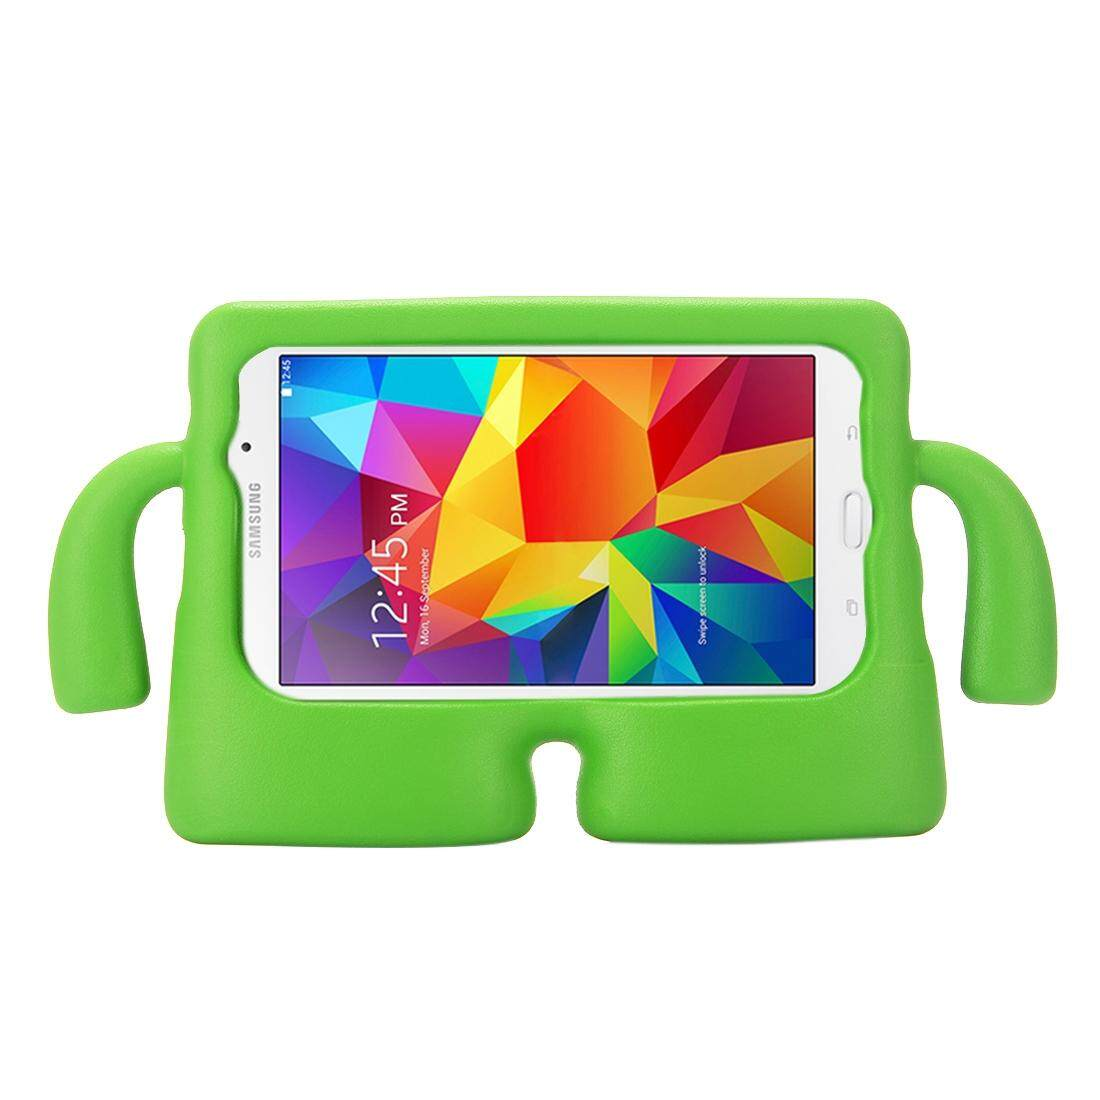 For Samsung Galaxy Tab 4 7.0 / T230 & Tab 3 Kids / Lite / T111 Universal Small Person TV Model EVA Bumper Protective Case(Green) - intl